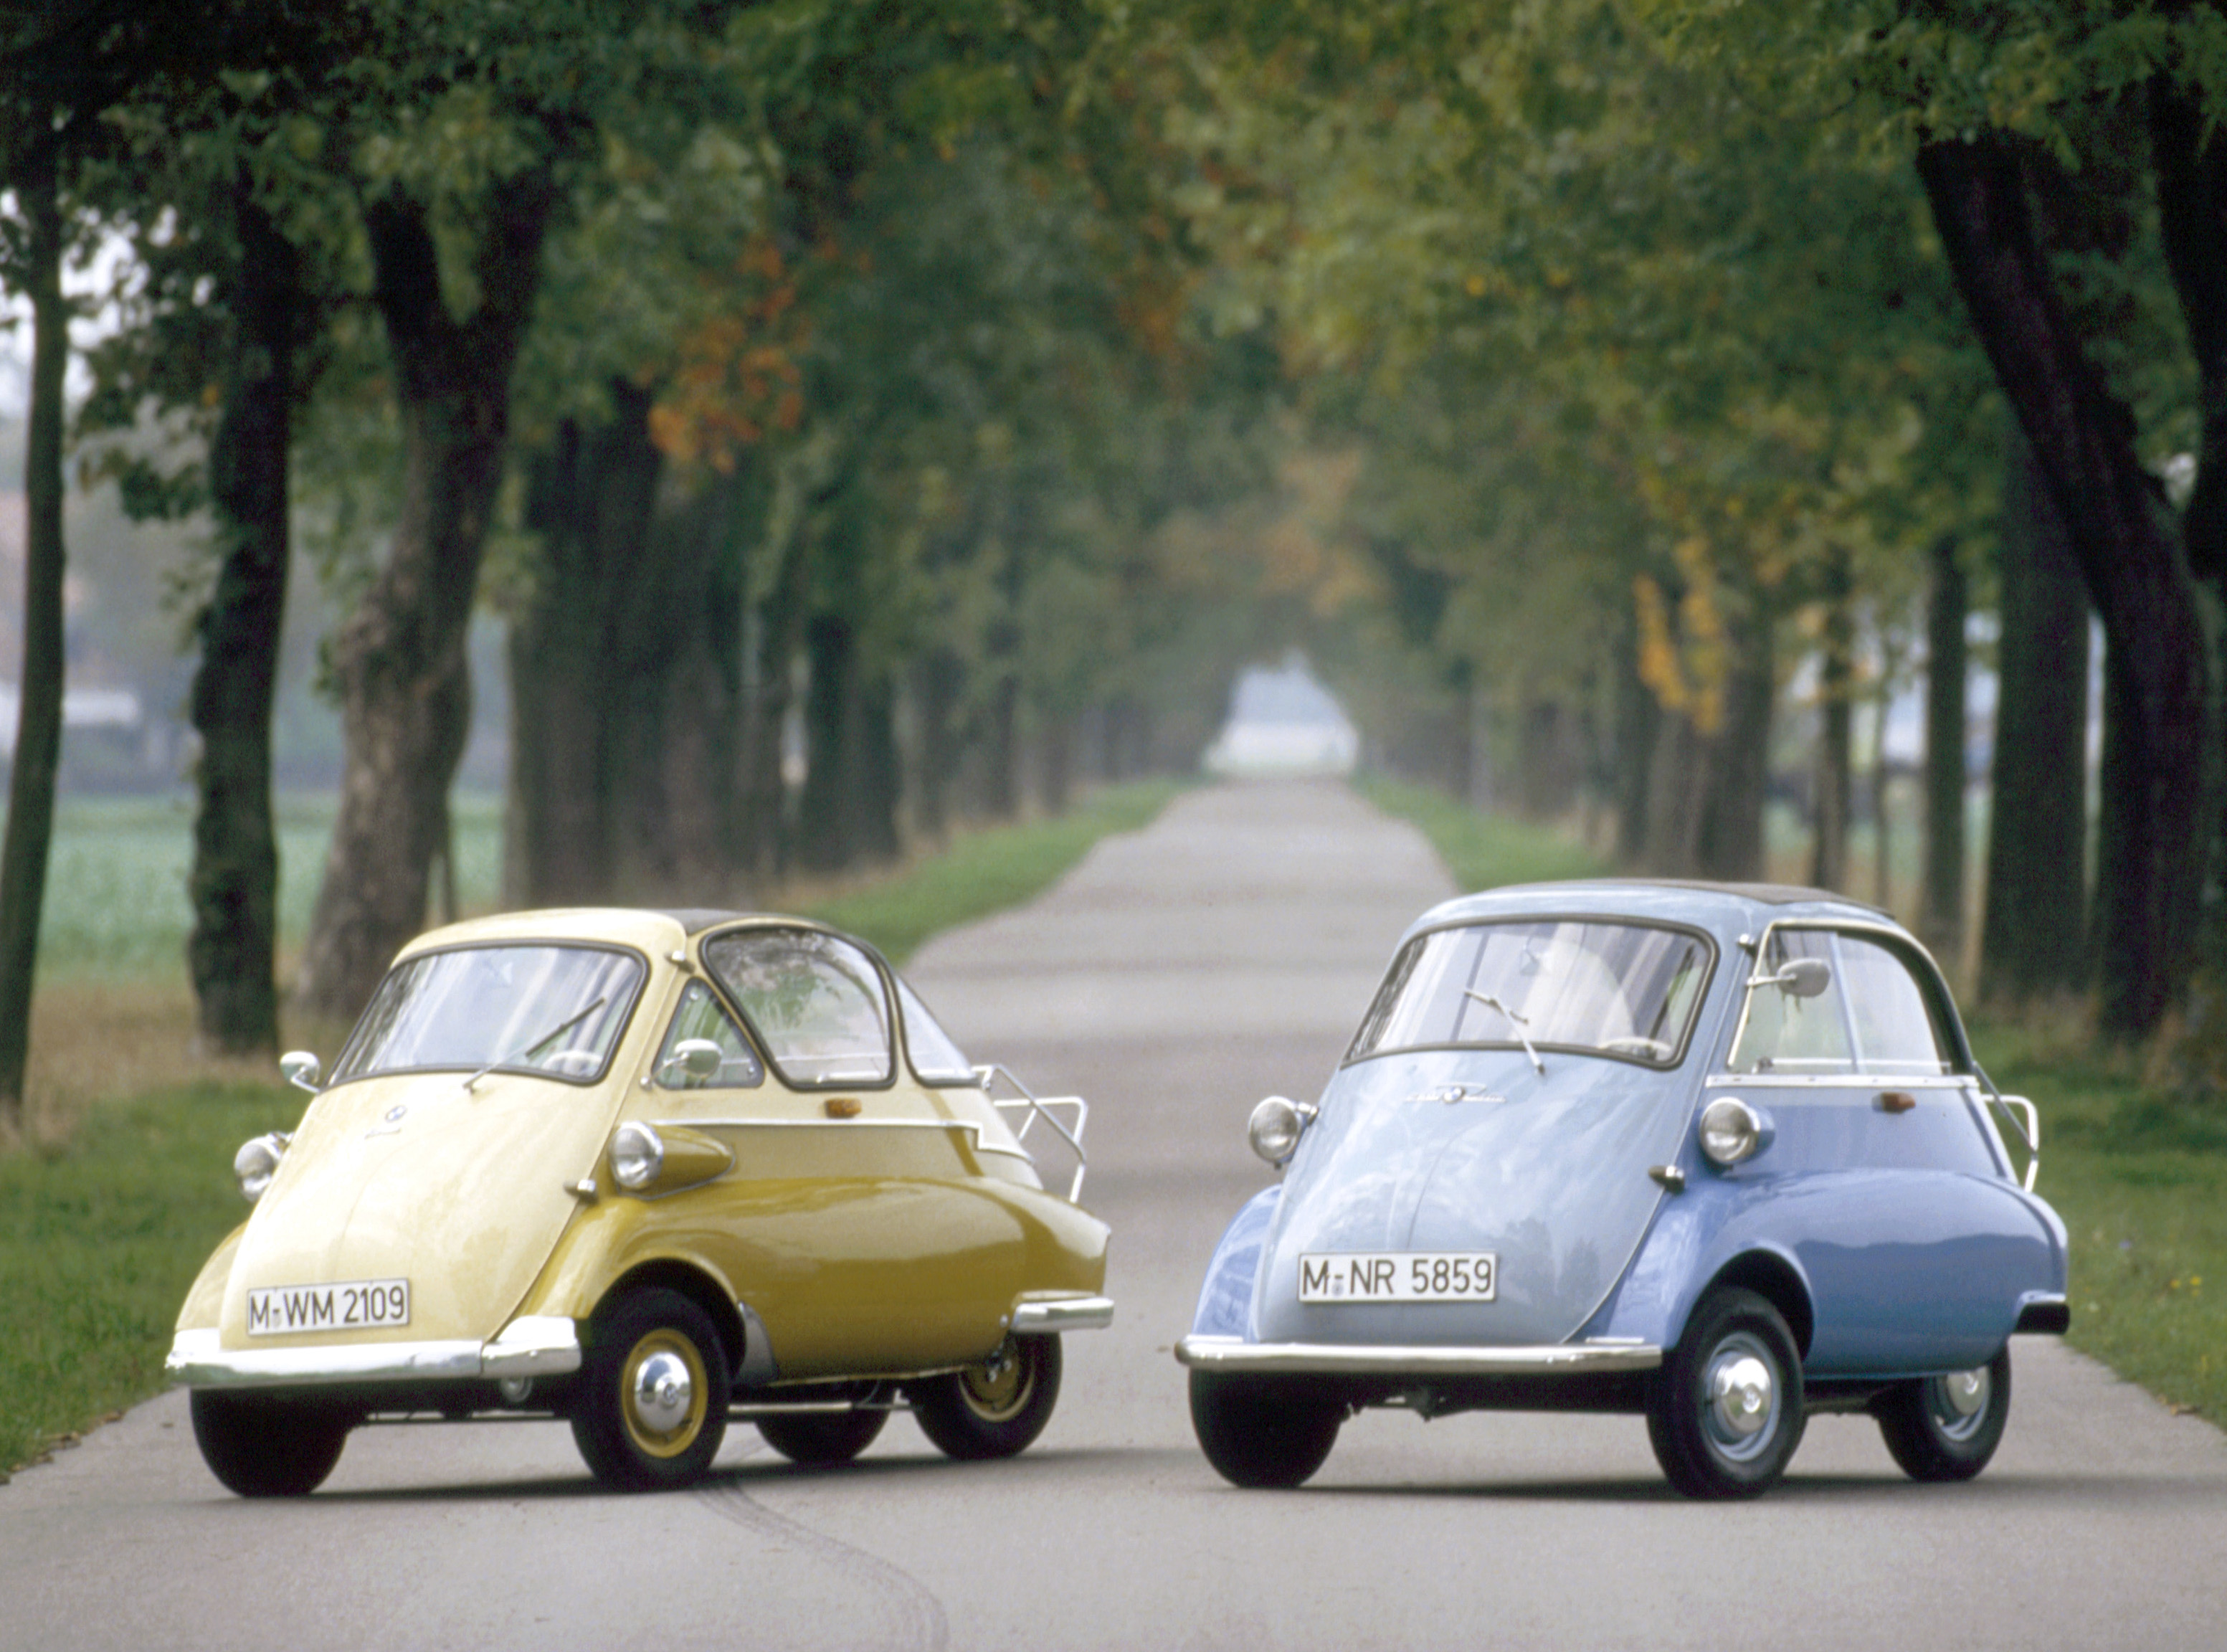 What is the smallest car in the world called